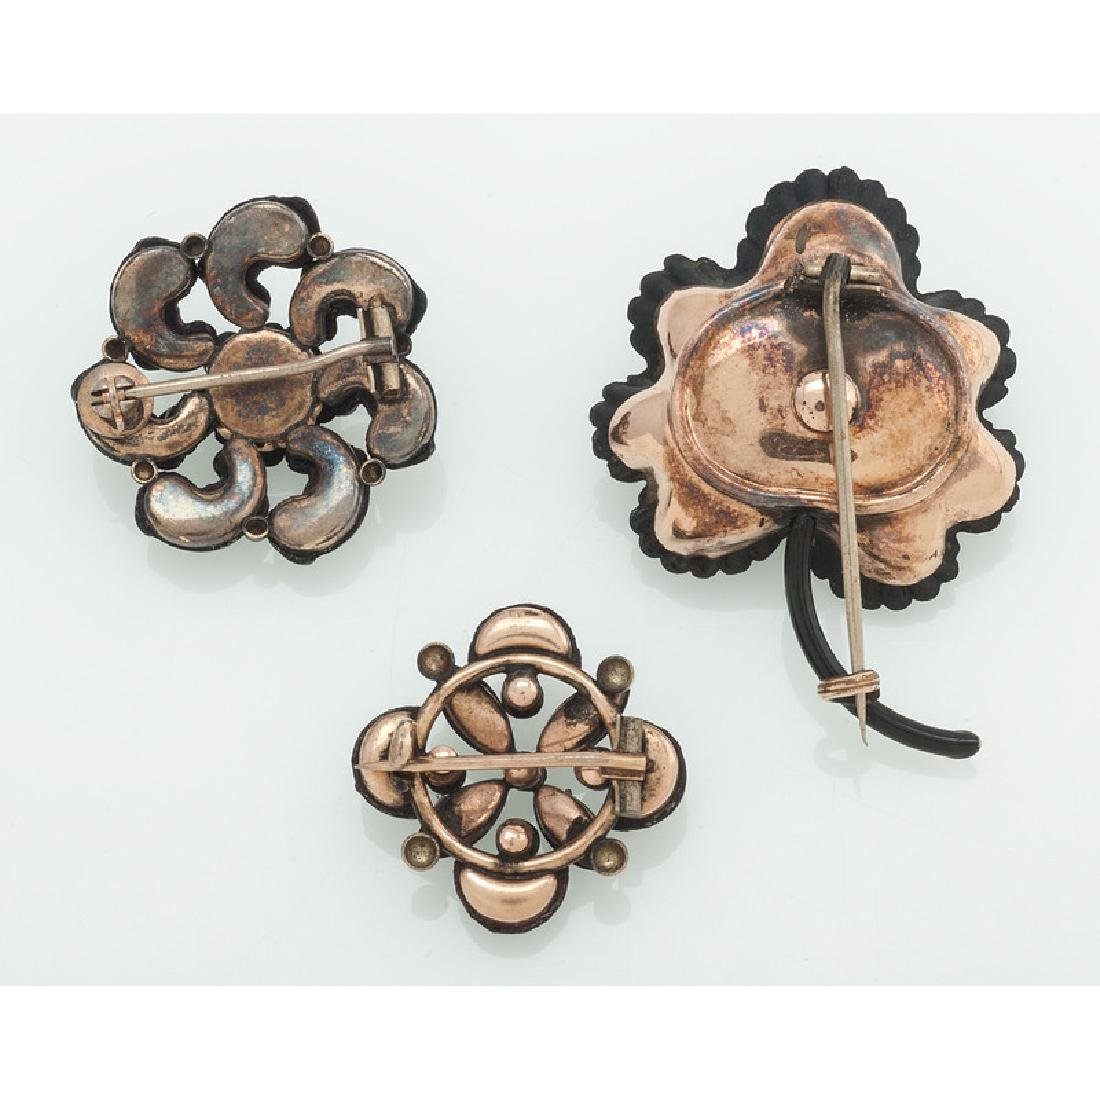 Gold Filled Victorian Mourning Brooches - 2